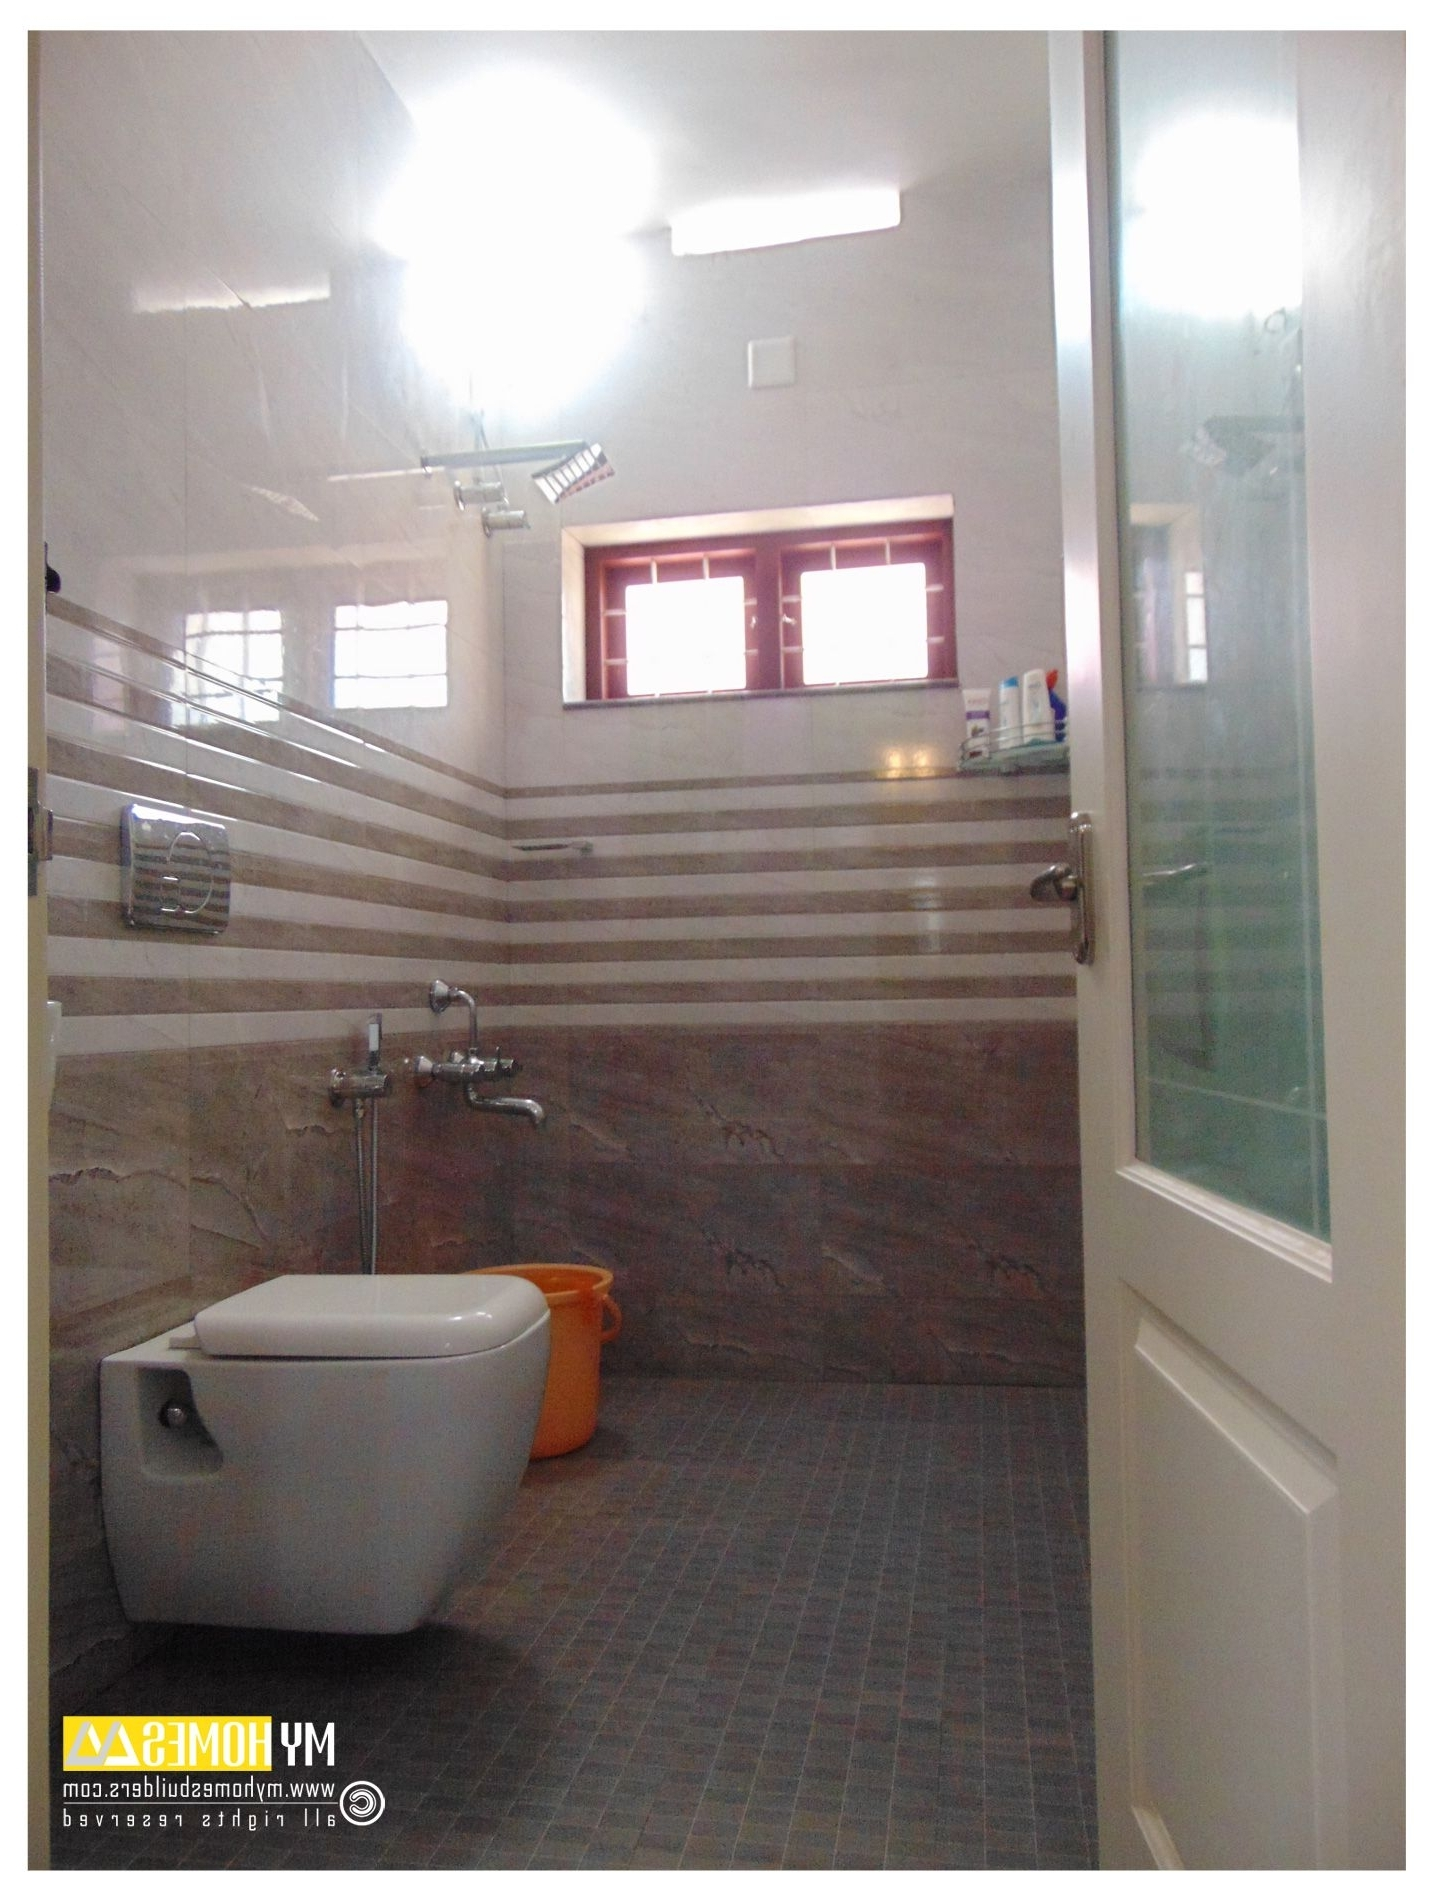 Bathroom Designs In Kerala | Bathroom Designs India Kerala House Bathroom Designs